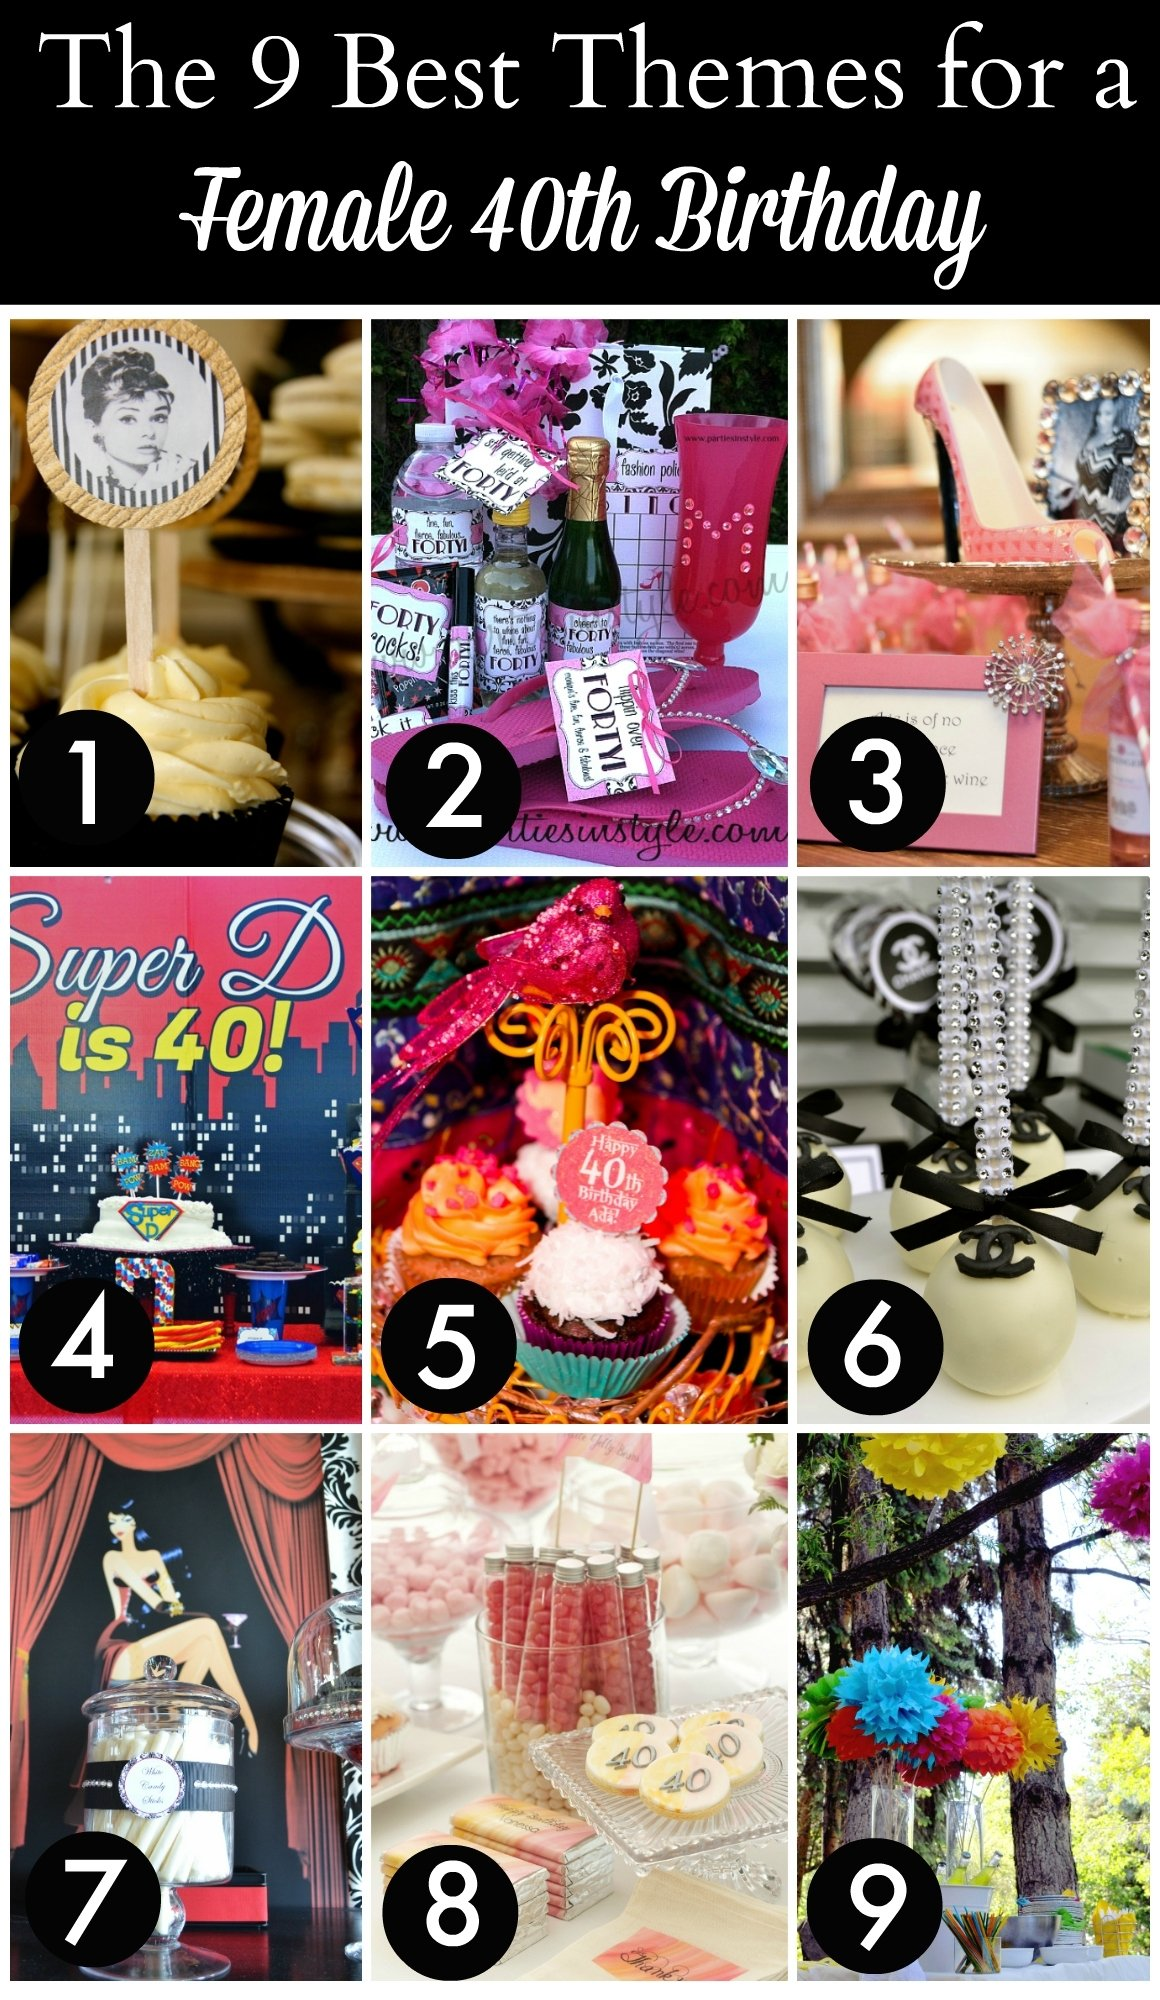 10 Fantastic Birthday Party Ideas For Women the 12 best 40th birthday themes for women catch my party 1